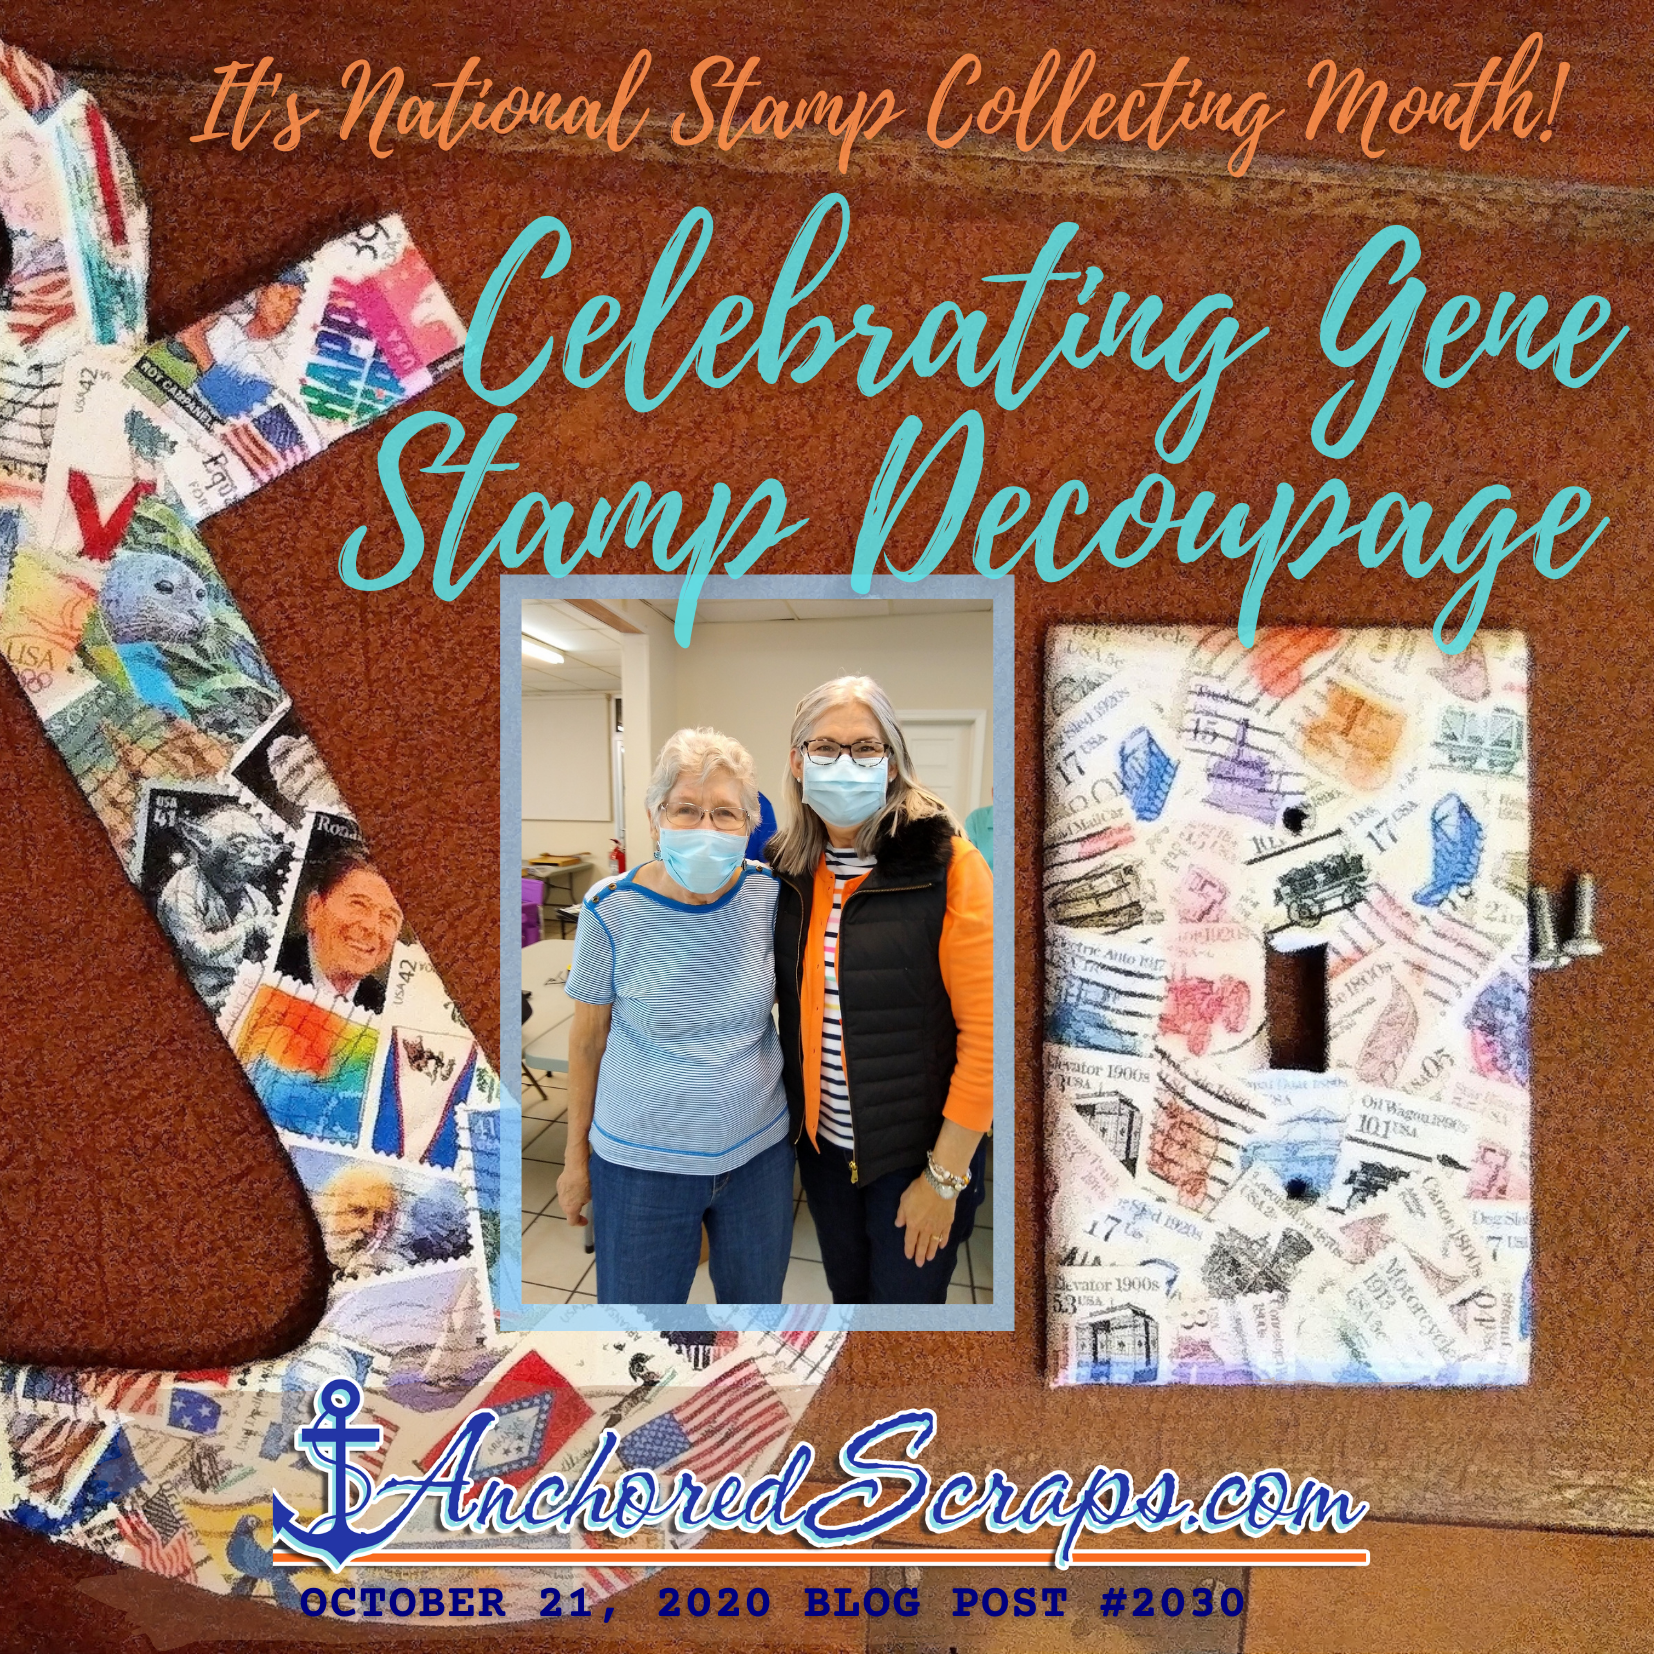 Celebrating Gene Stamp Decoupage - It's National Stamp Collecting Month